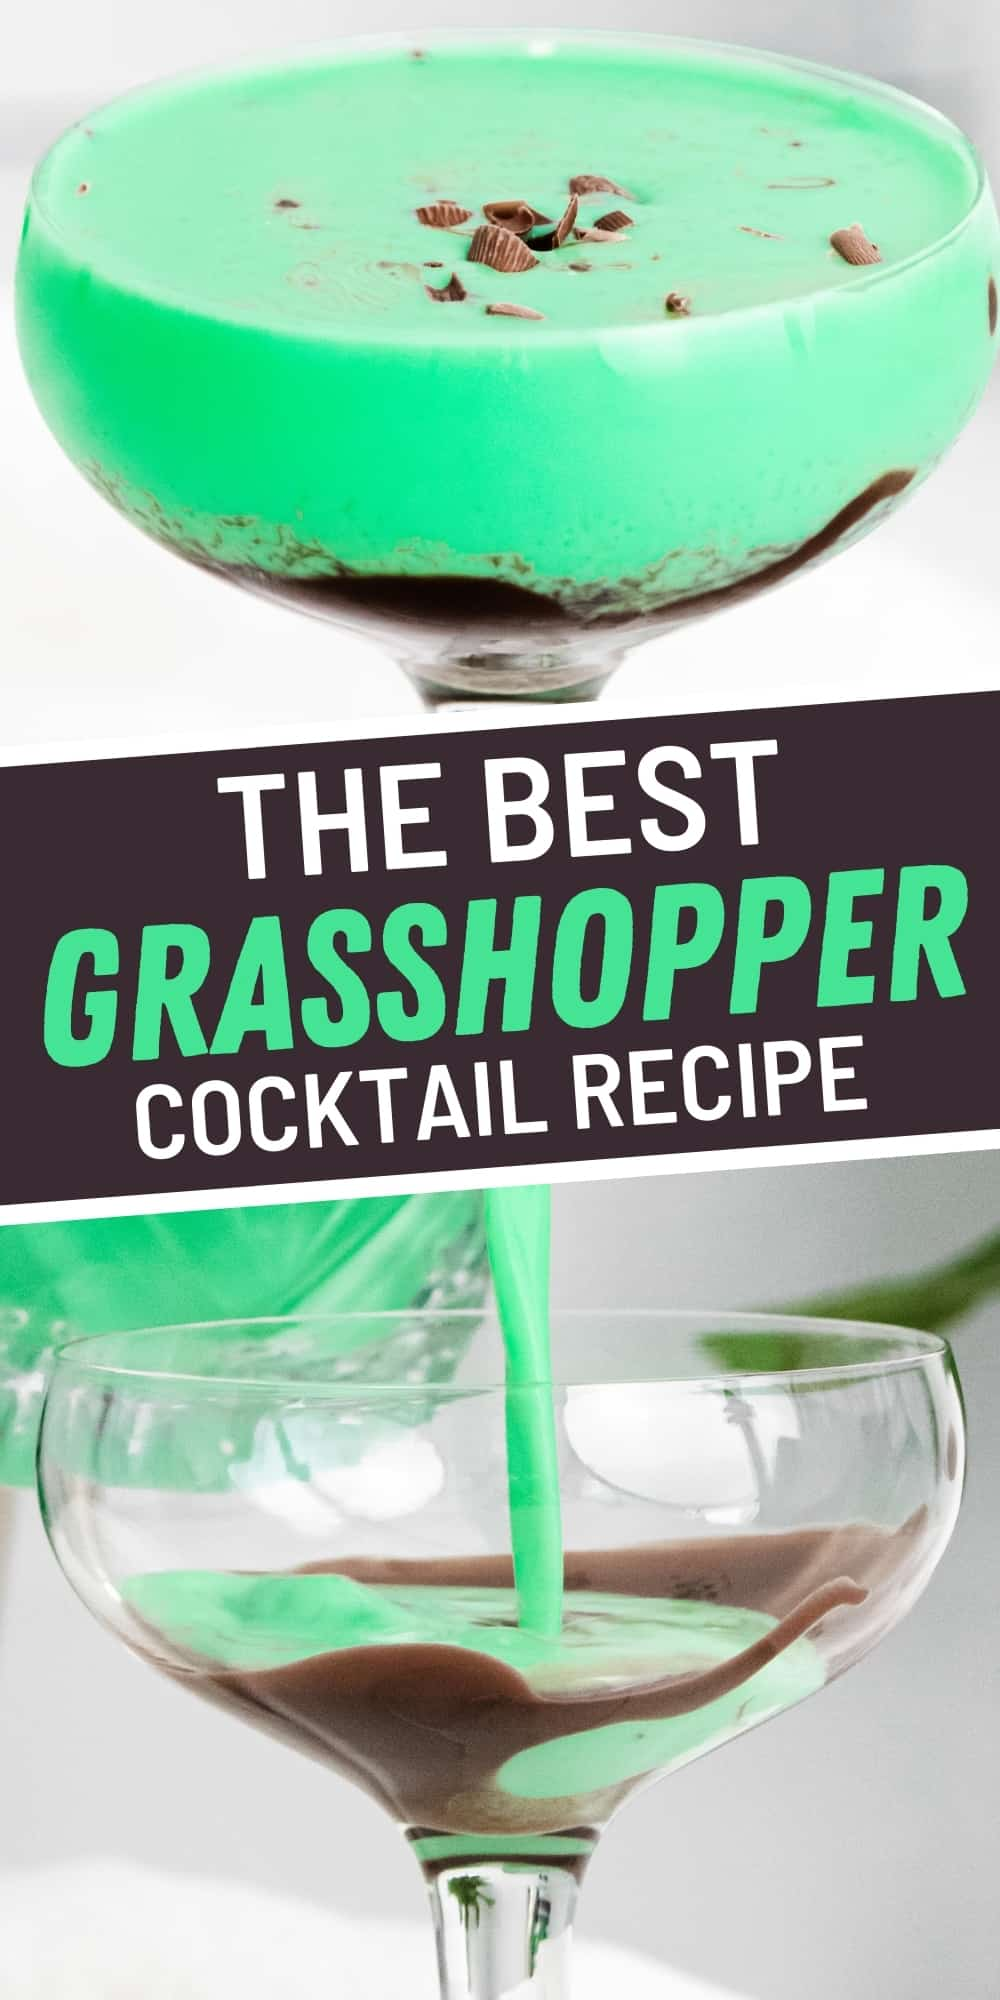 The Best Grasshopper Cocktail Recipe